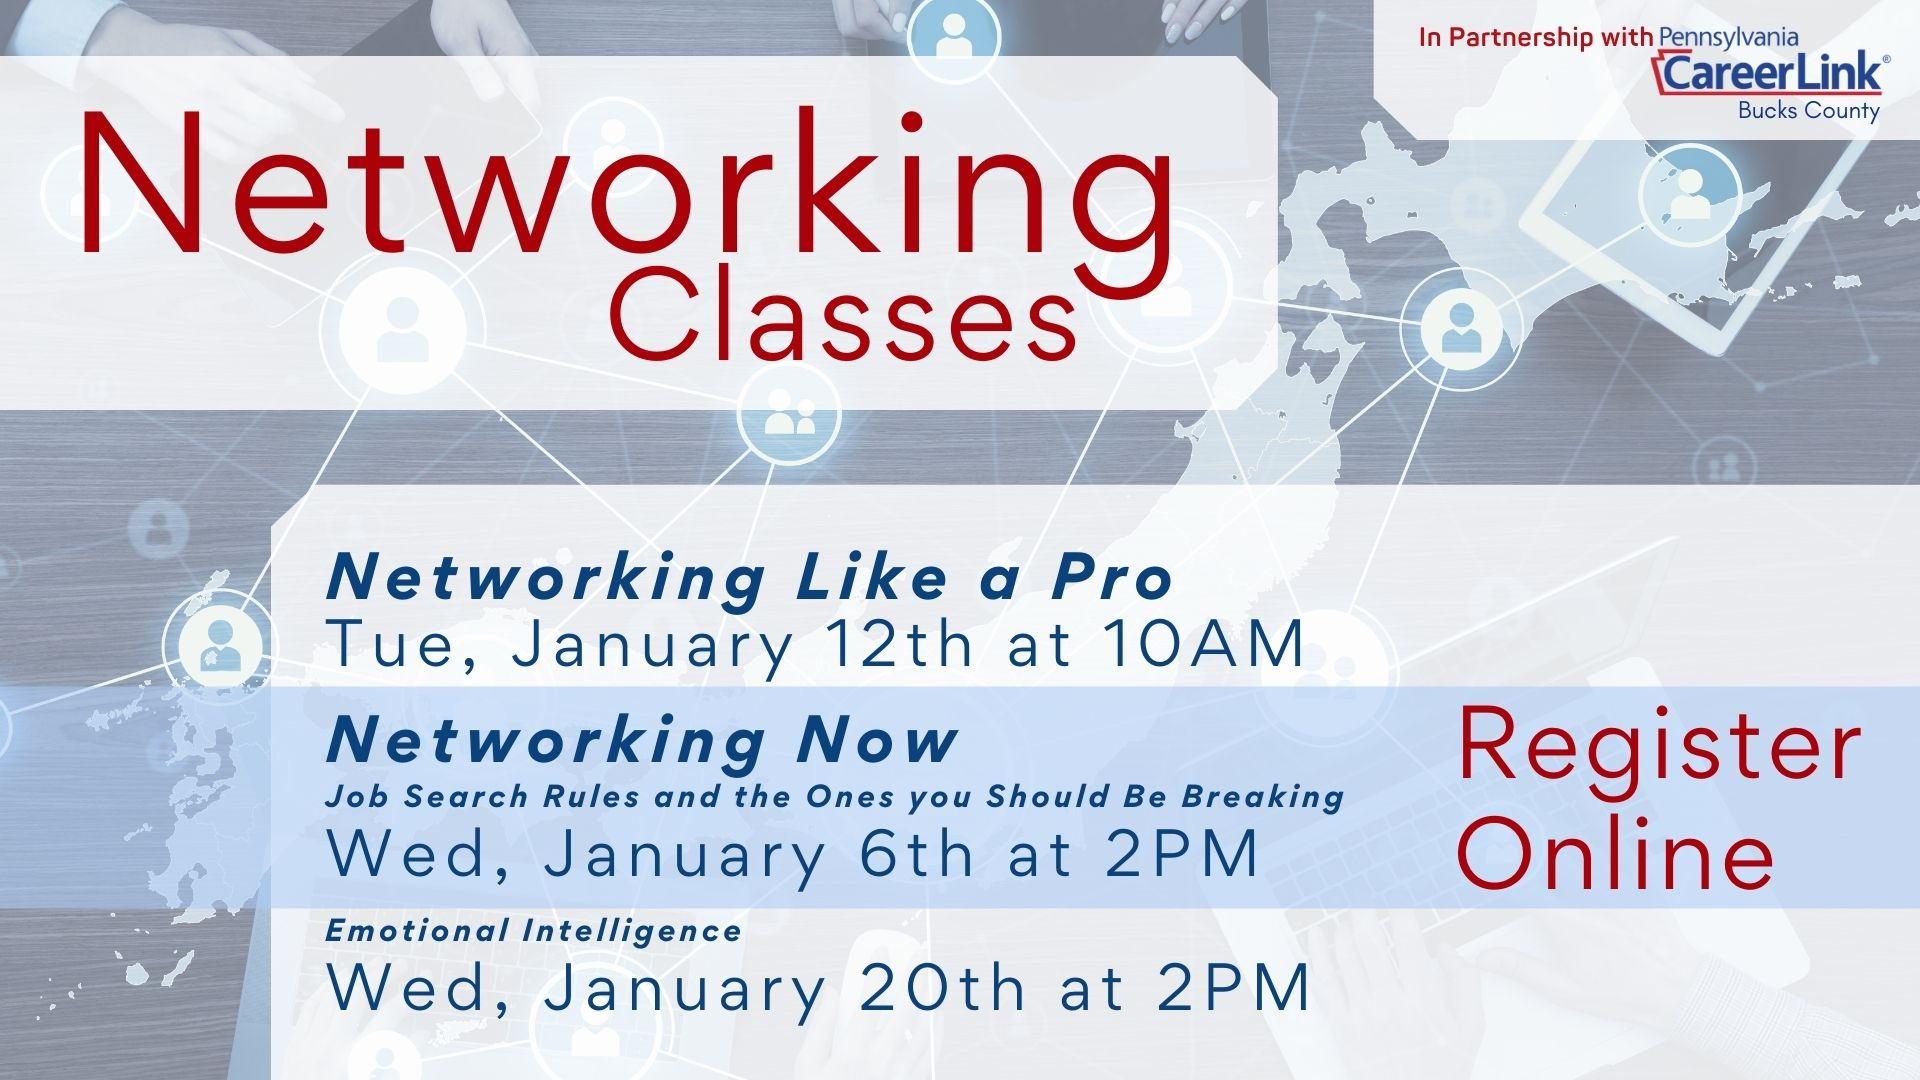 PA CareerLink: Networking Now